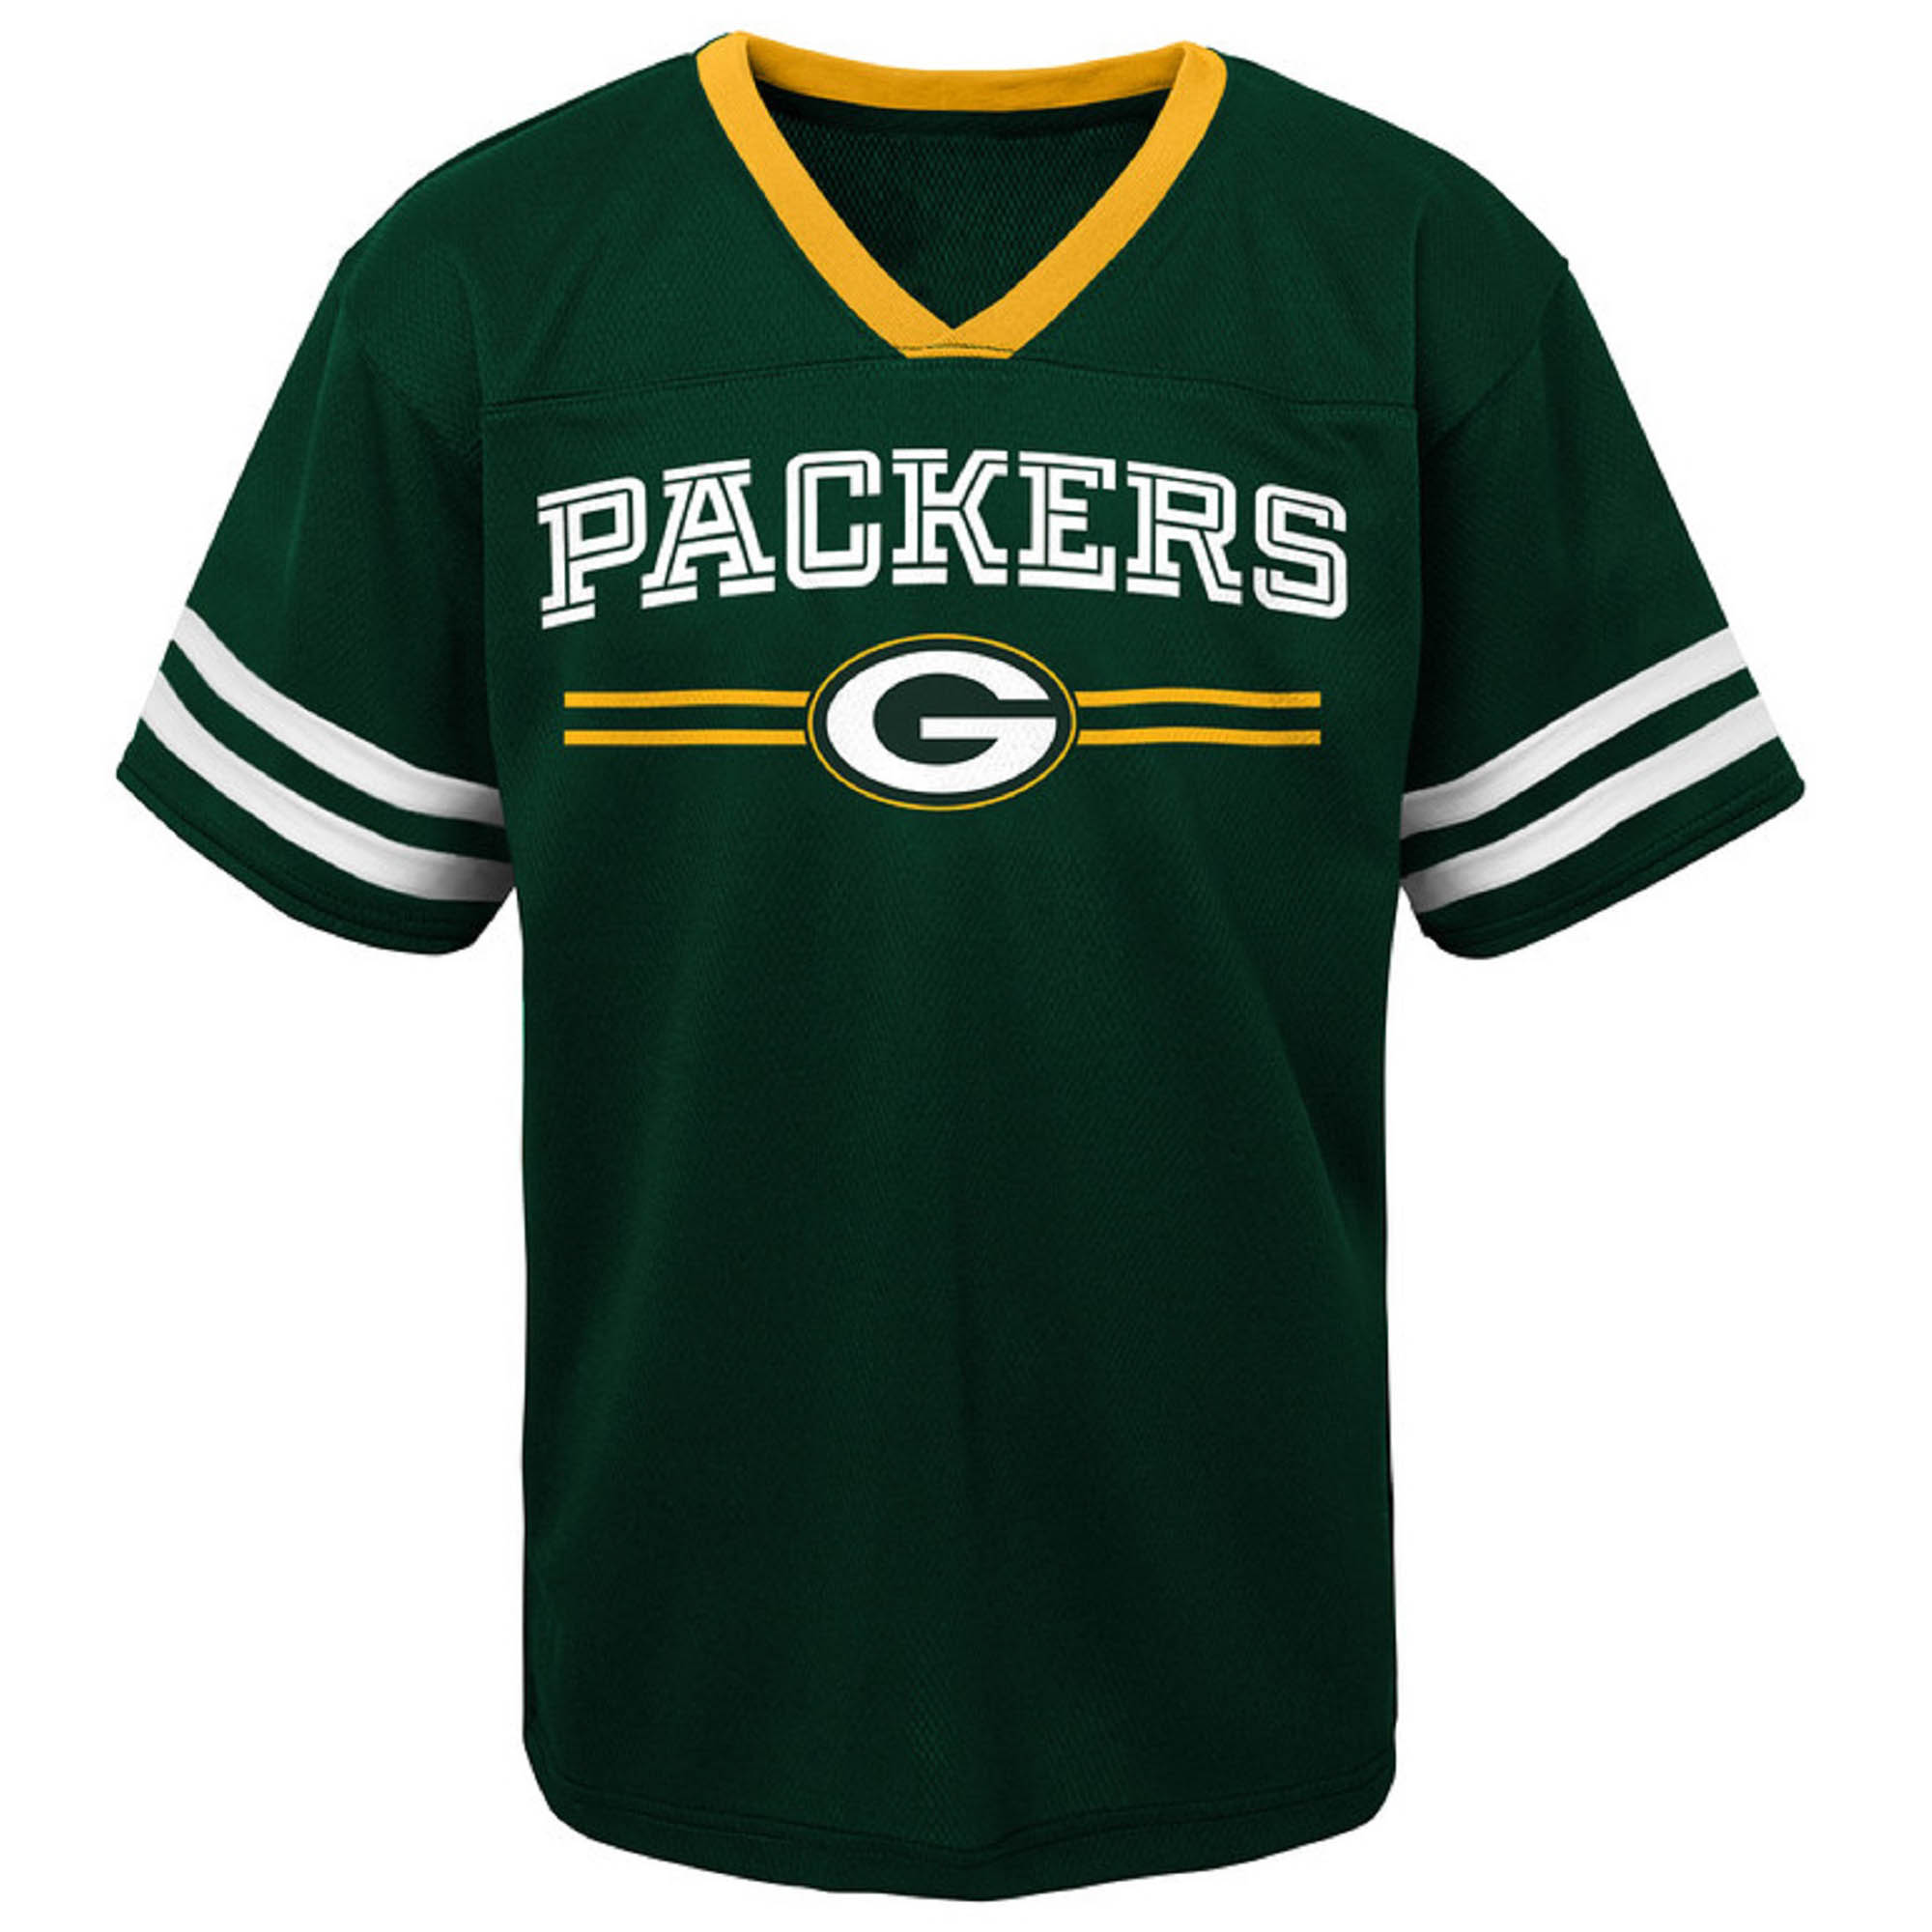 Toddler Green Green Bay Packers Mesh Jersey V-Neck T-Shirt